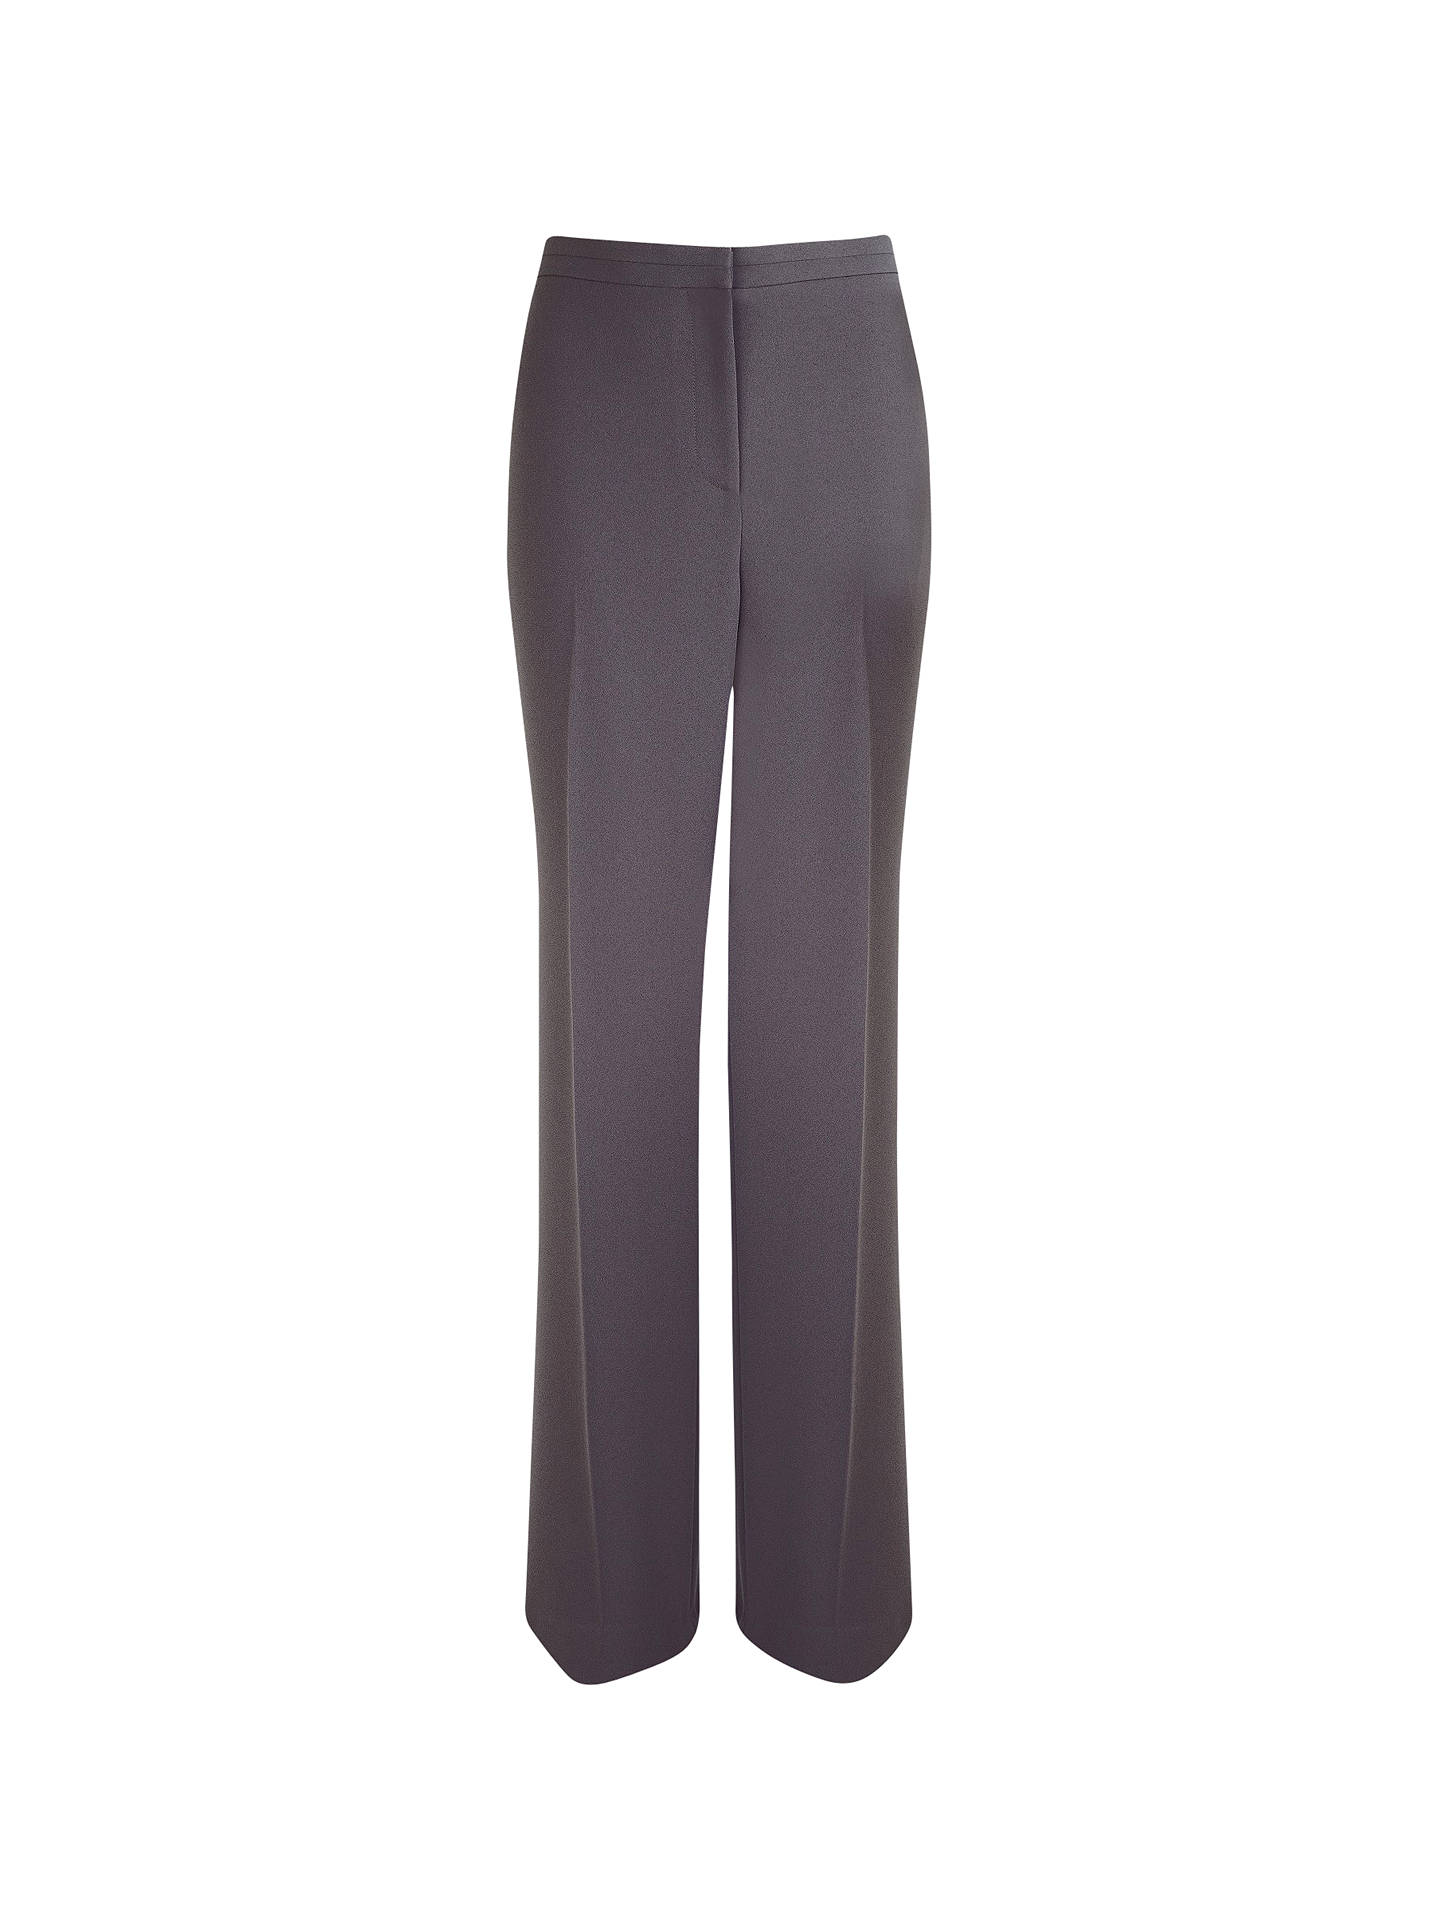 7818d0cb585 Buy Windsmoor Tailored Trousers